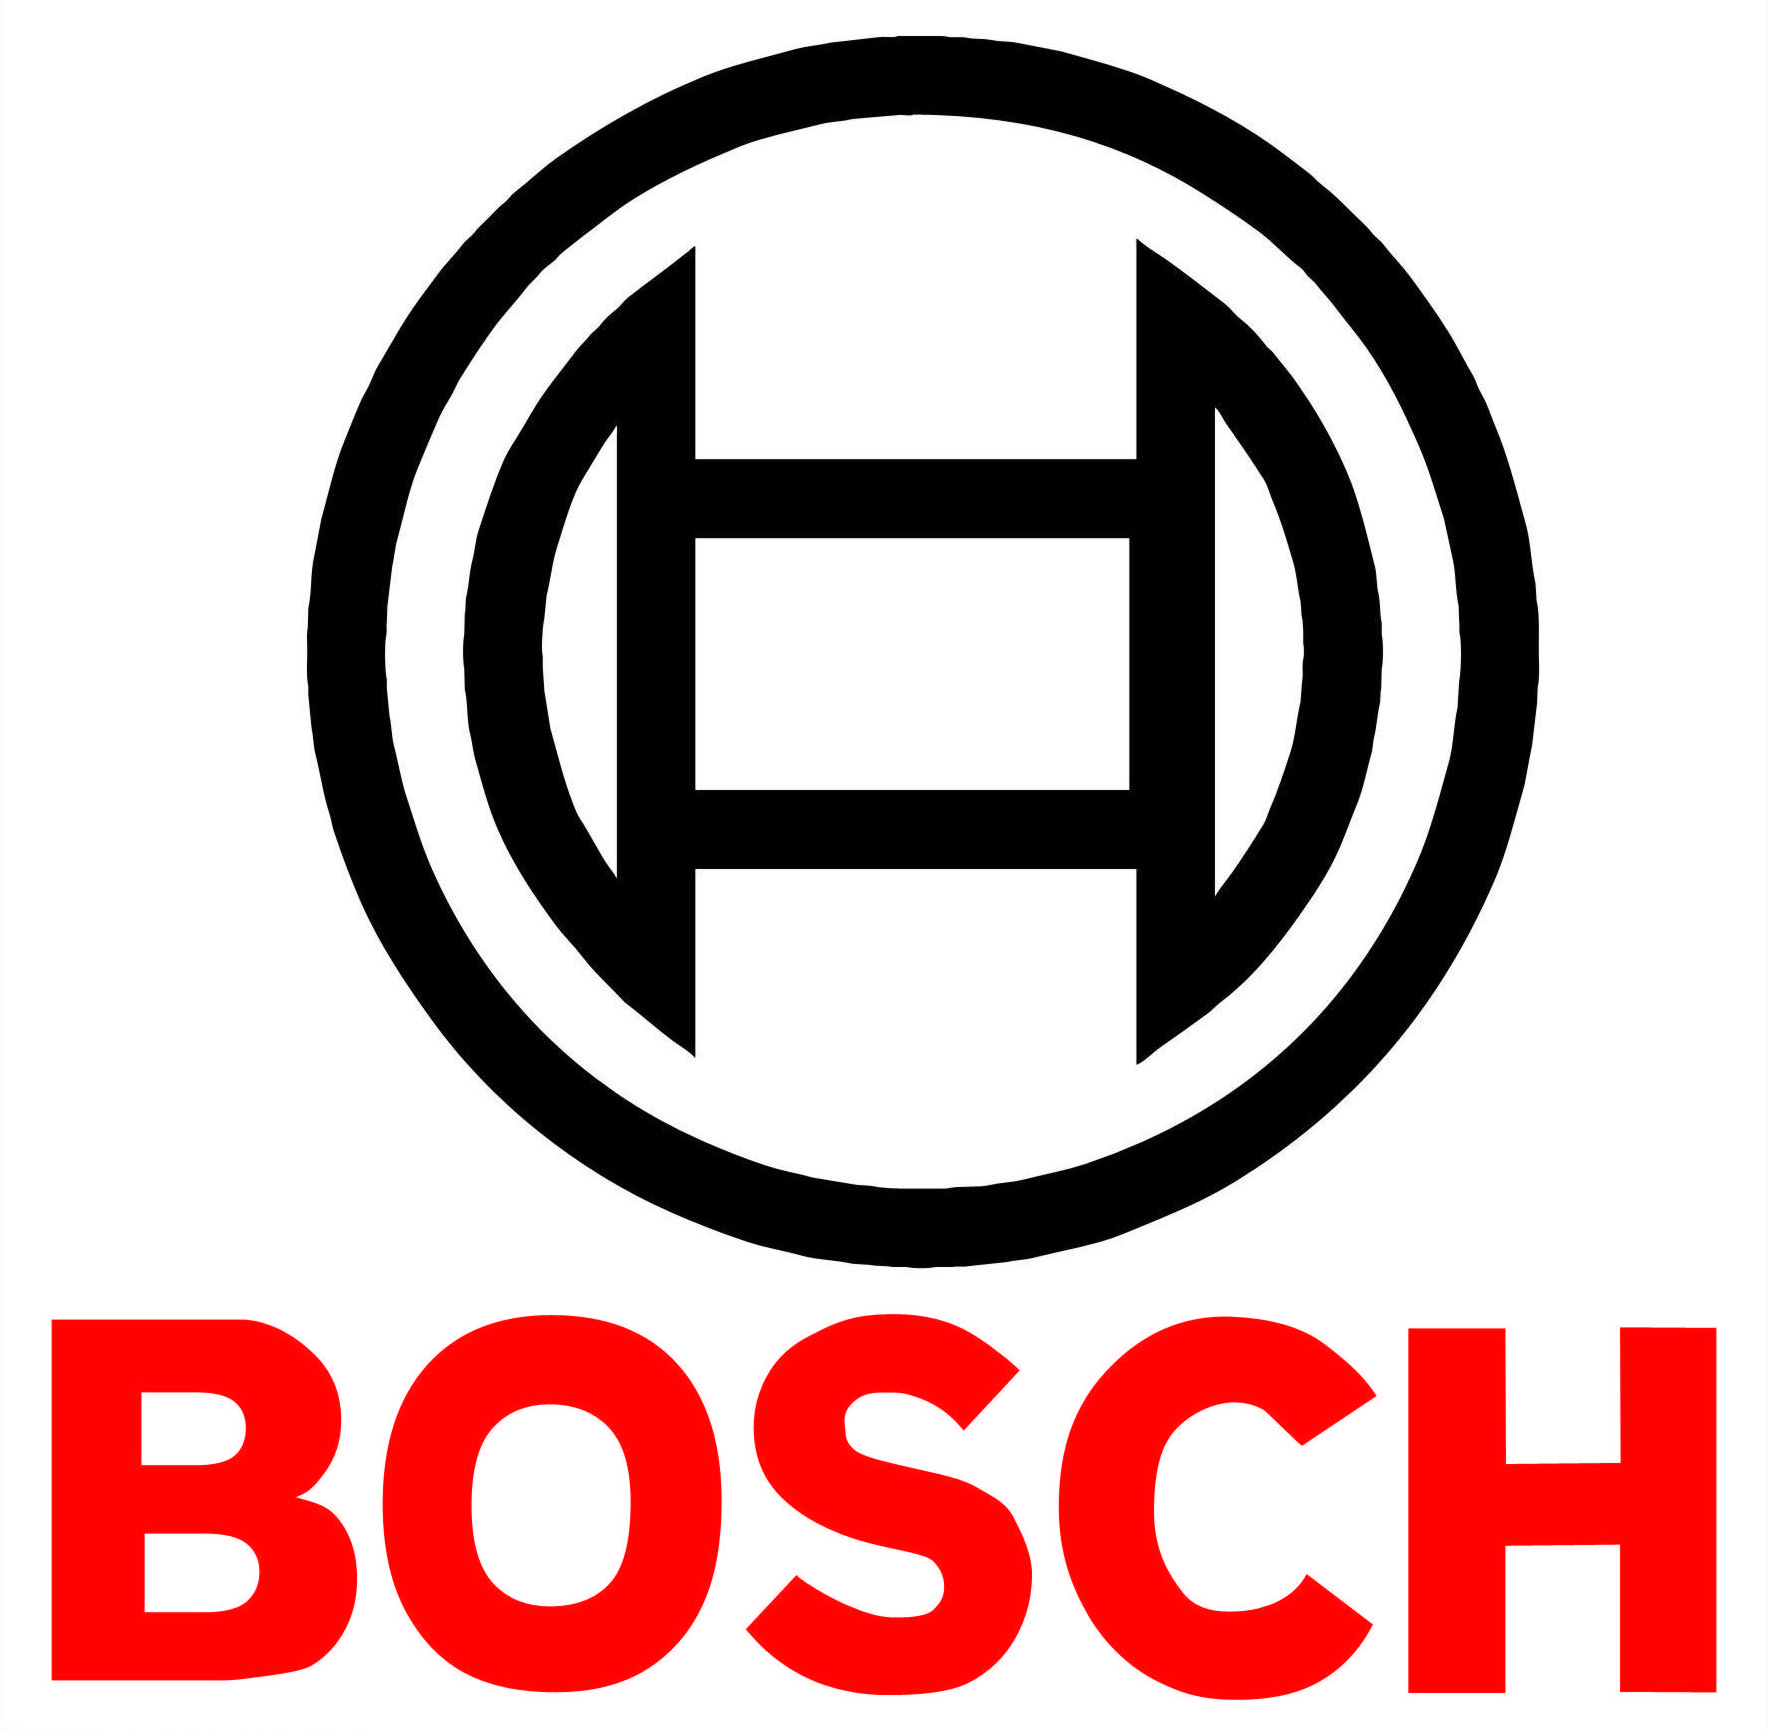 ce qui distingue bosch des autres marques aspirateur mon comparatif. Black Bedroom Furniture Sets. Home Design Ideas